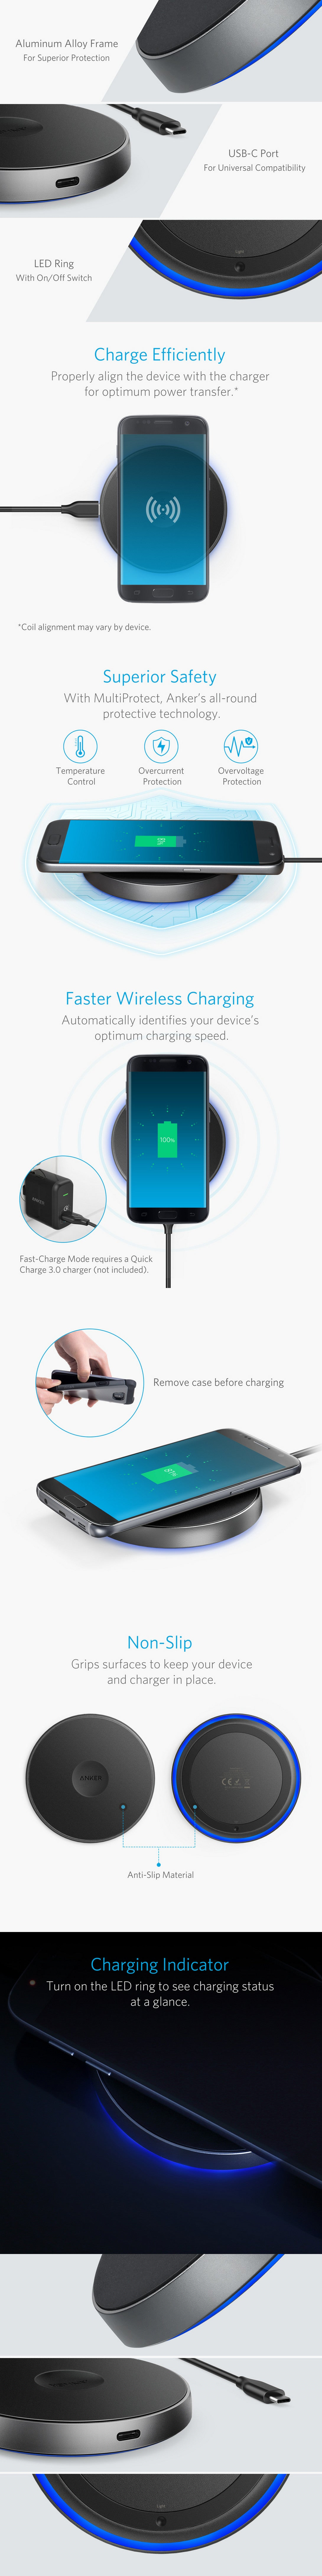 anker-powertouch-10-wireless-fast-charger